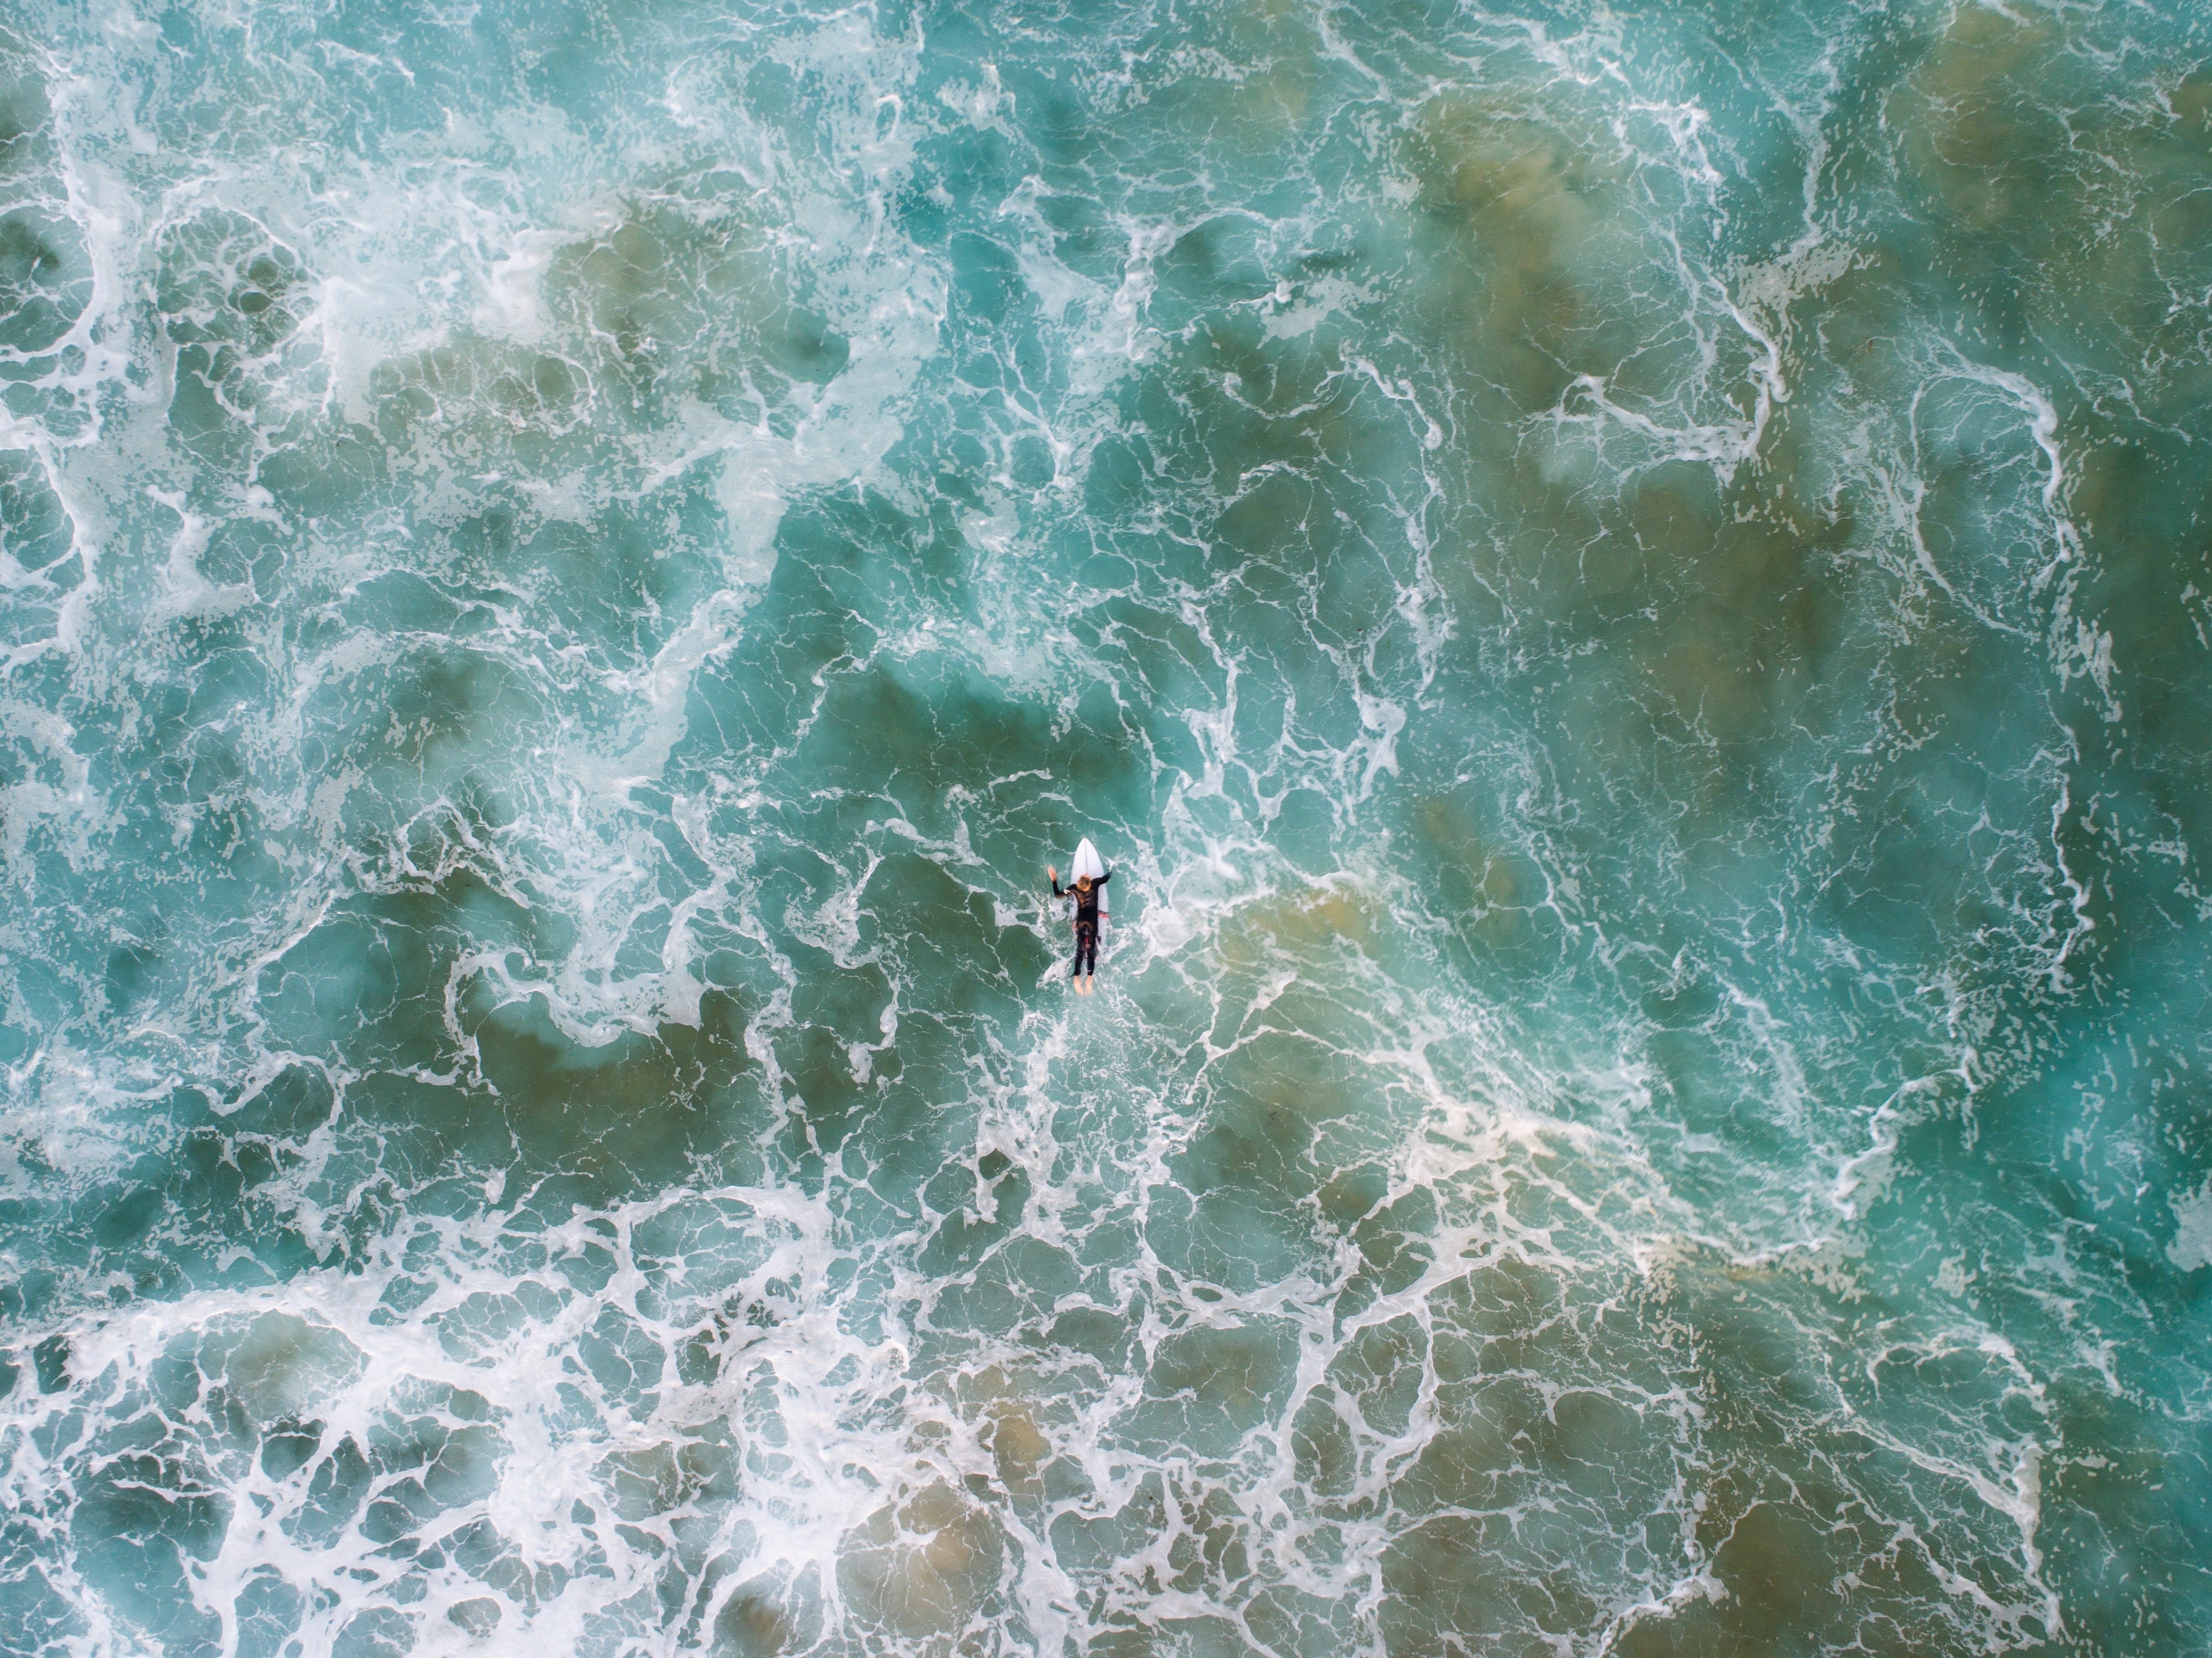 bird's-eye view photo of man surfing on body of water